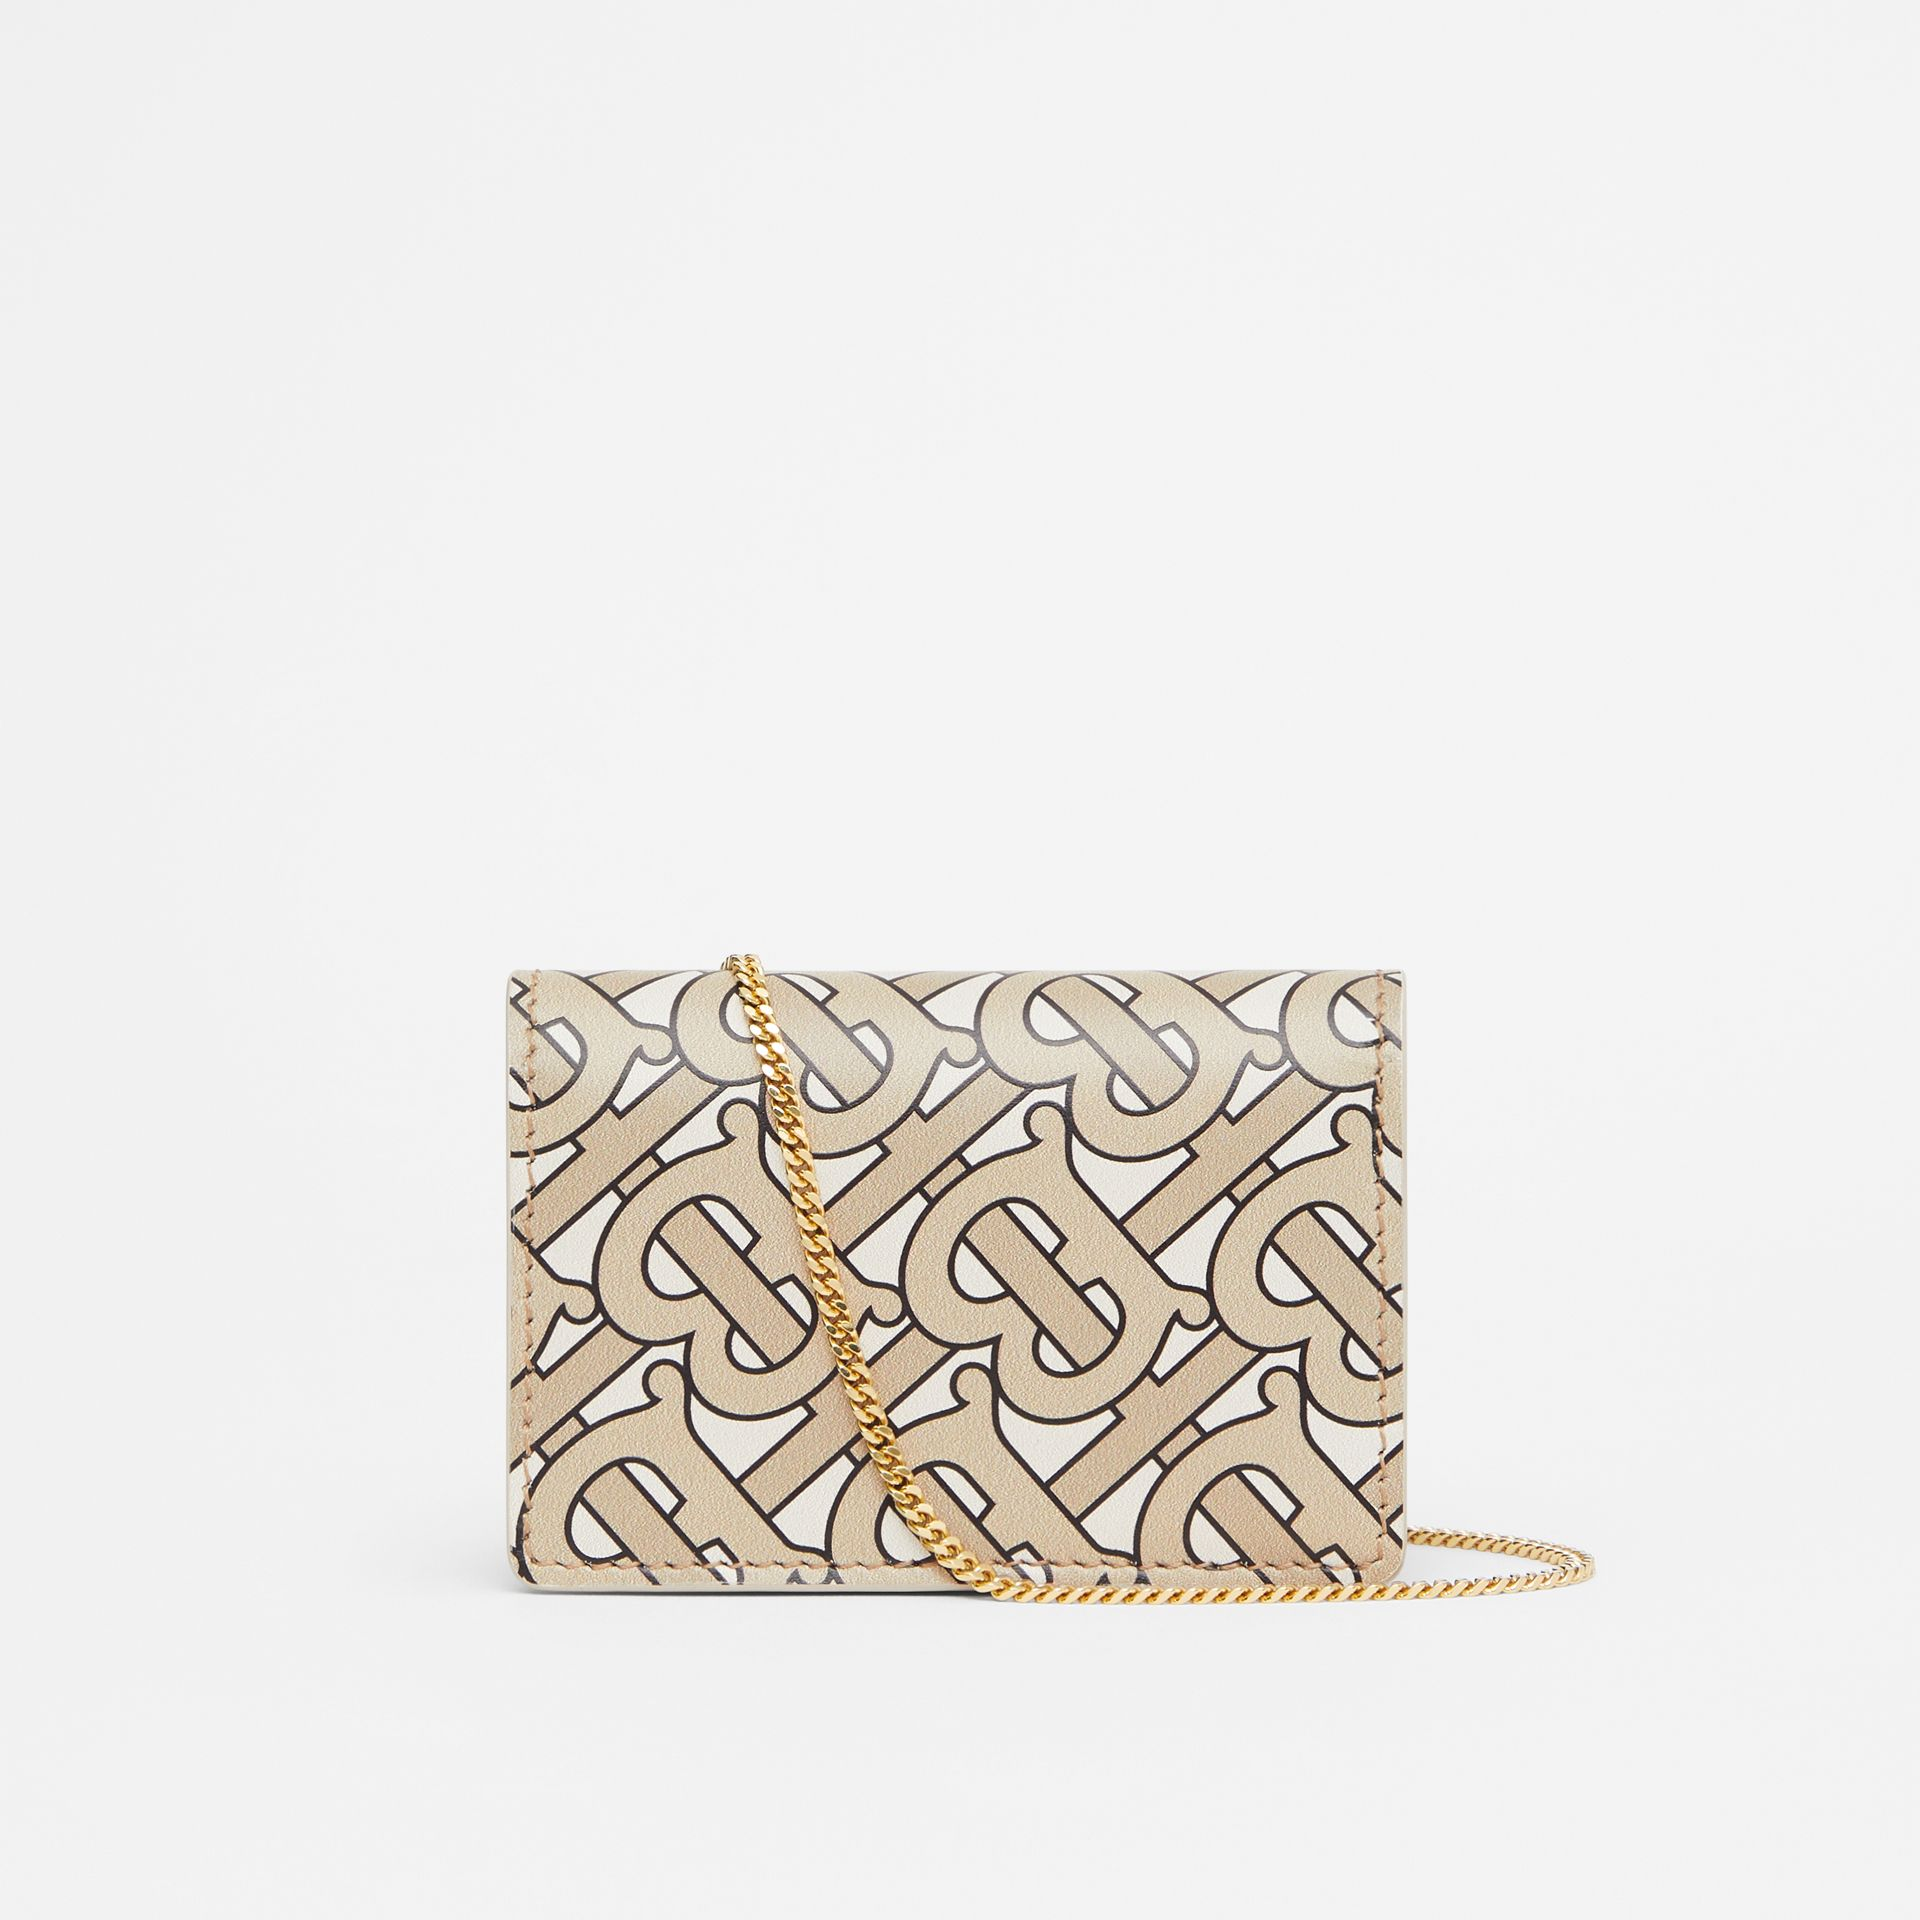 Monogram Print Card Case with Detachable Strap in Beige - Women | Burberry United States - gallery image 7